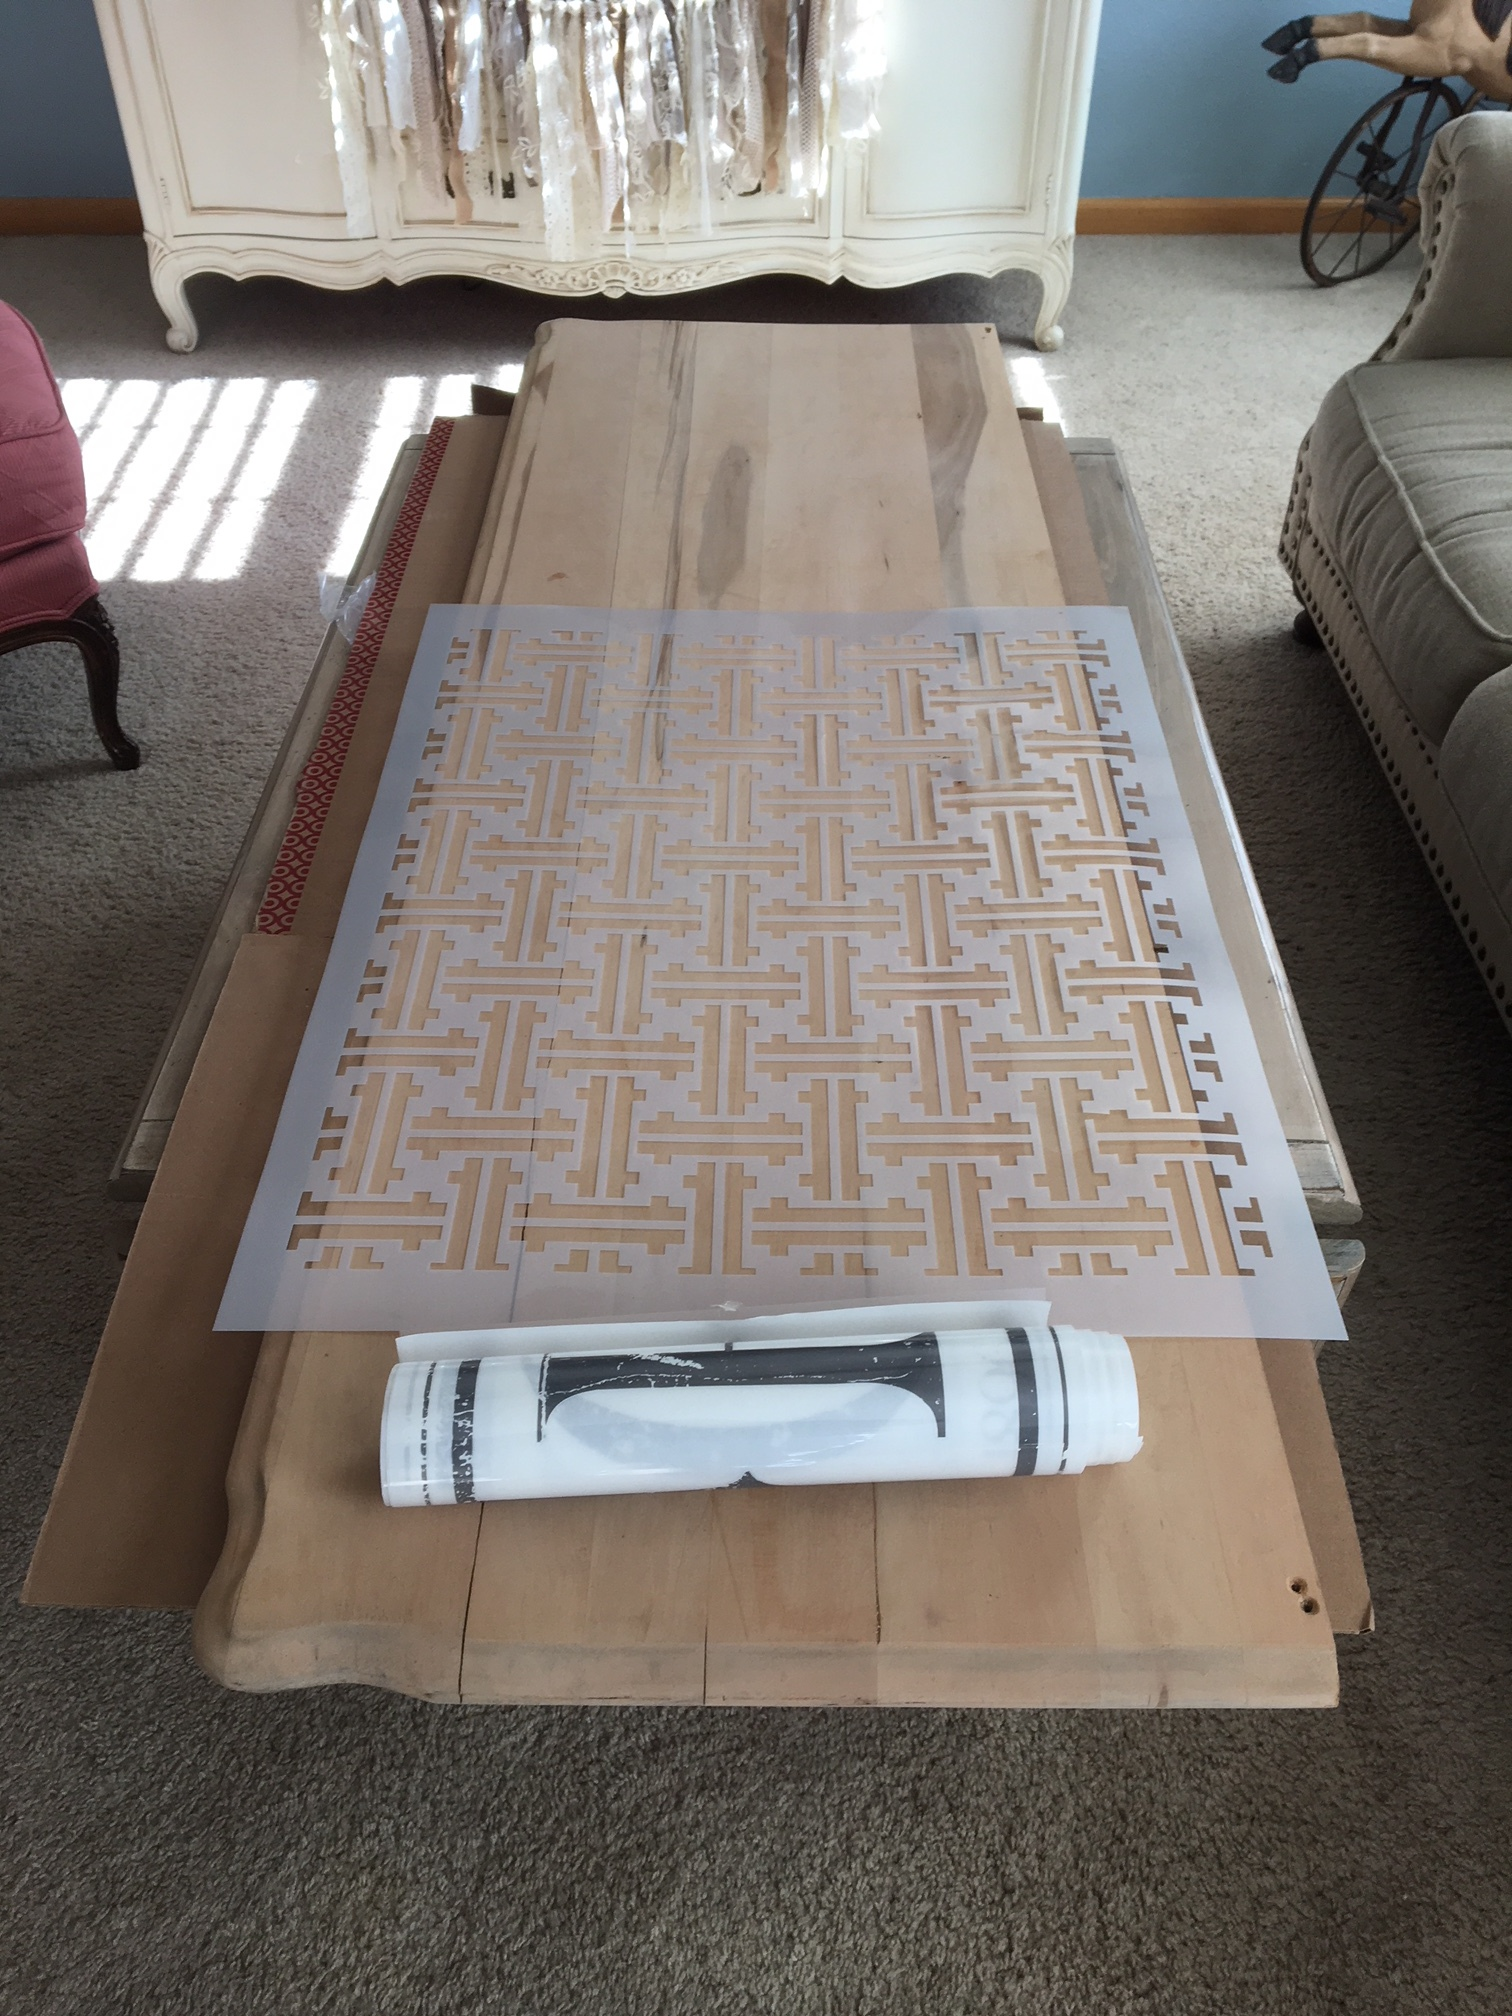 She grabbed one of our new [re]design stencils and an IOD decor transfer to get the plan rolling. This stencil is a basket weave style on a large scale for larger furniture or DIY home projects..And it is made of 14mL mylar for durability and strength....